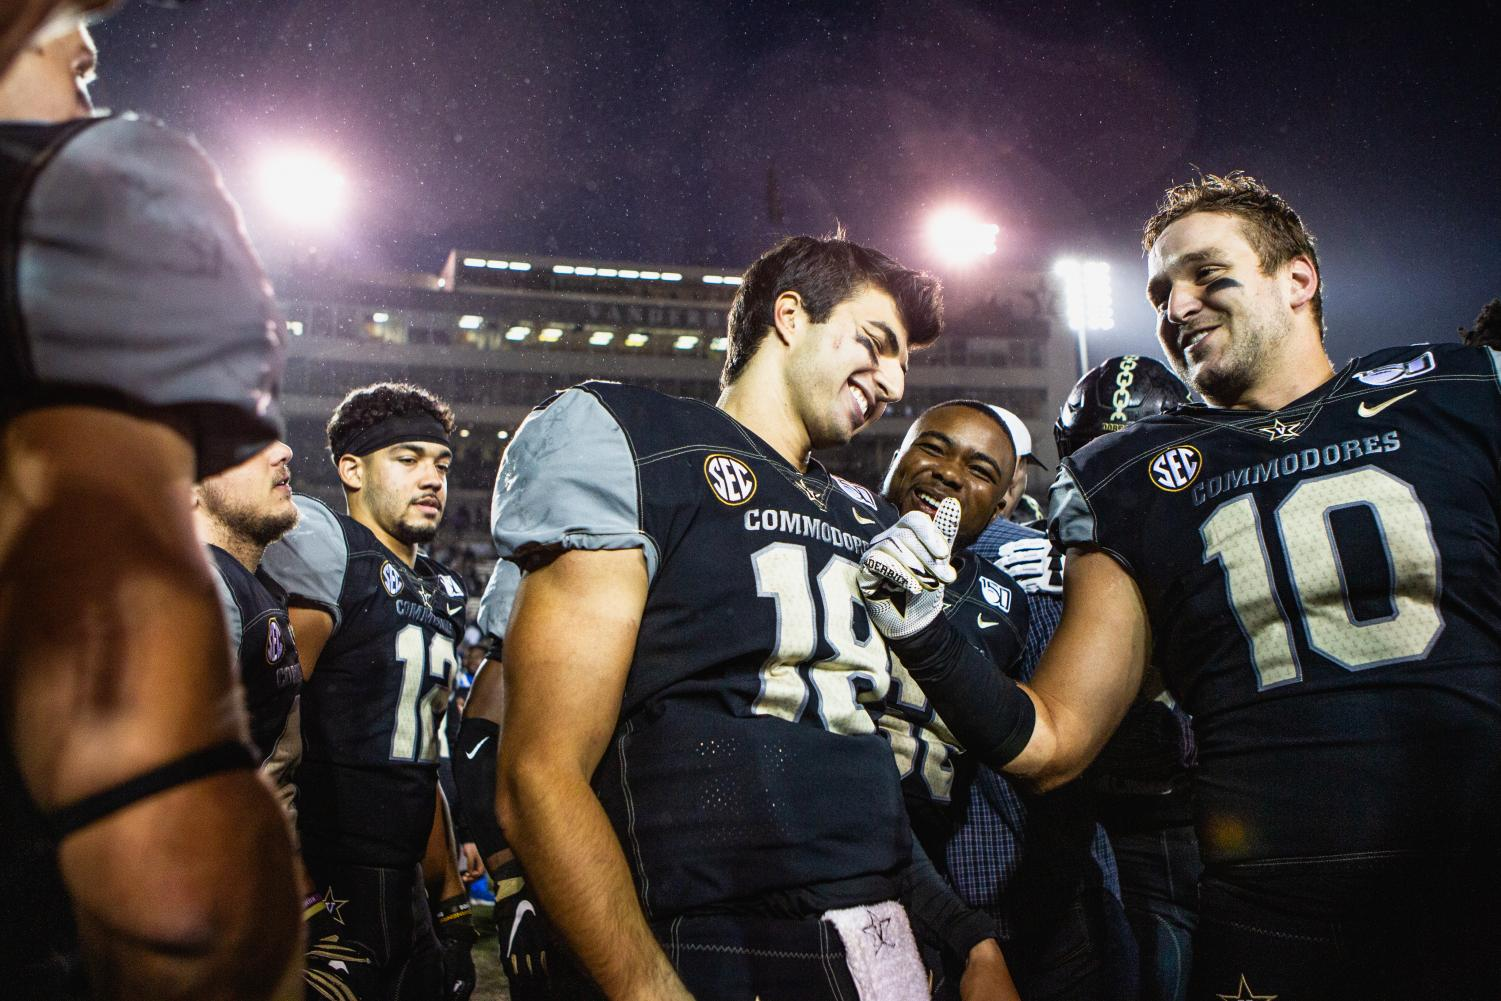 Vanderbilt upsets Mizzou for Homecoming Weekend on Saturday, October 19, 2019. (Photo by Hunter Long)